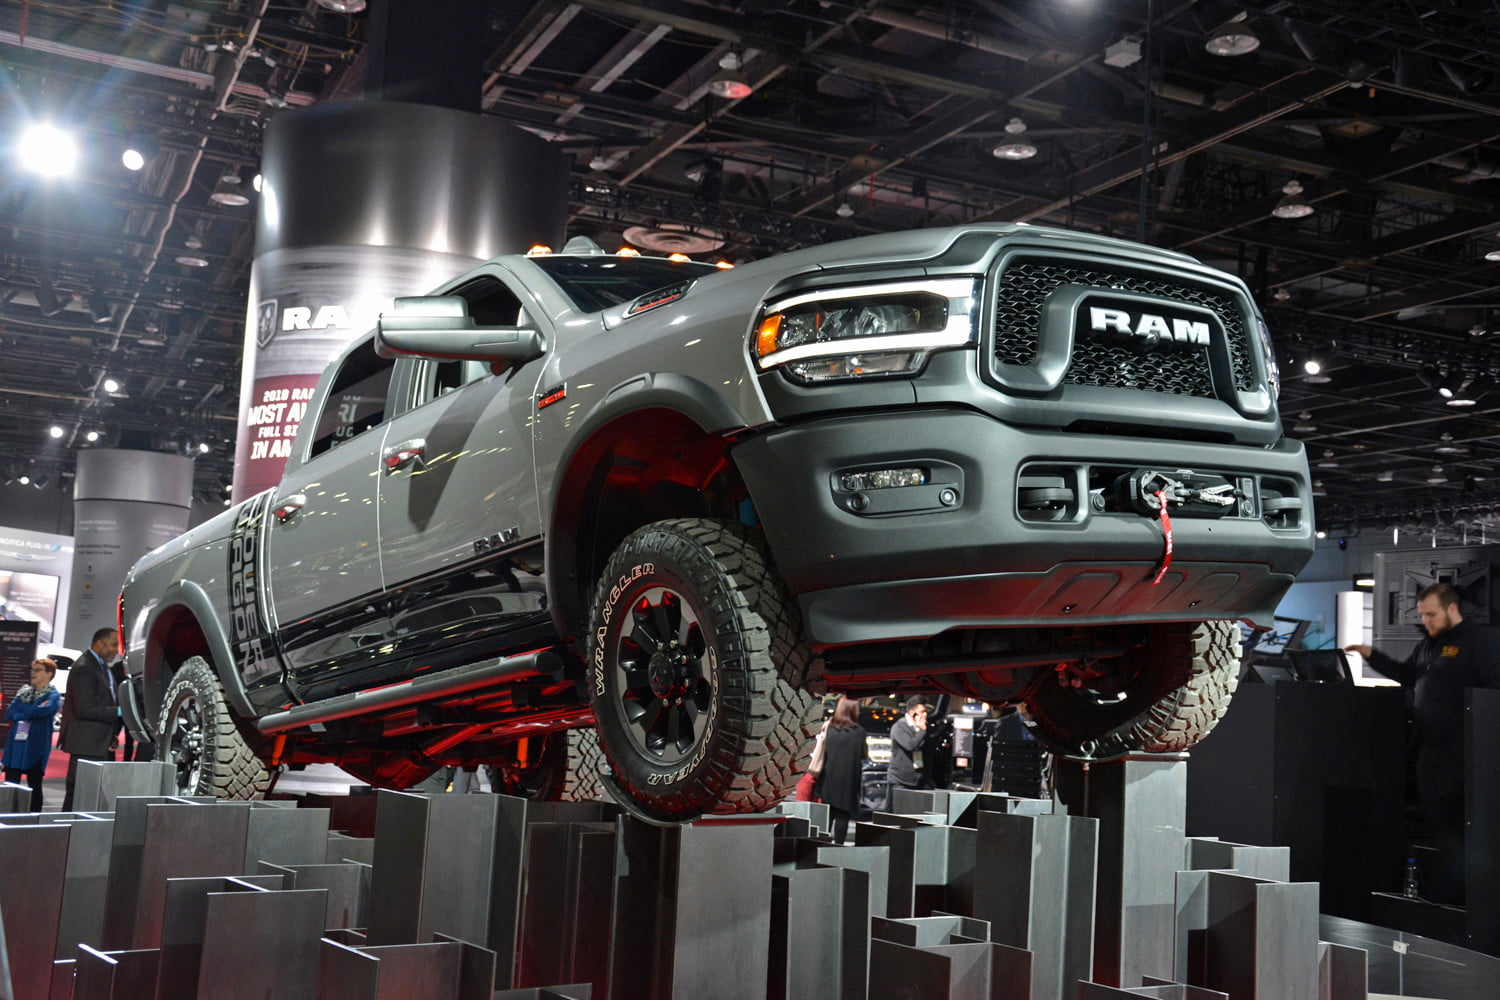 2019 Ram 2500 And 3500 Heavy Duty Debut At 2019 Detroit Auto Show